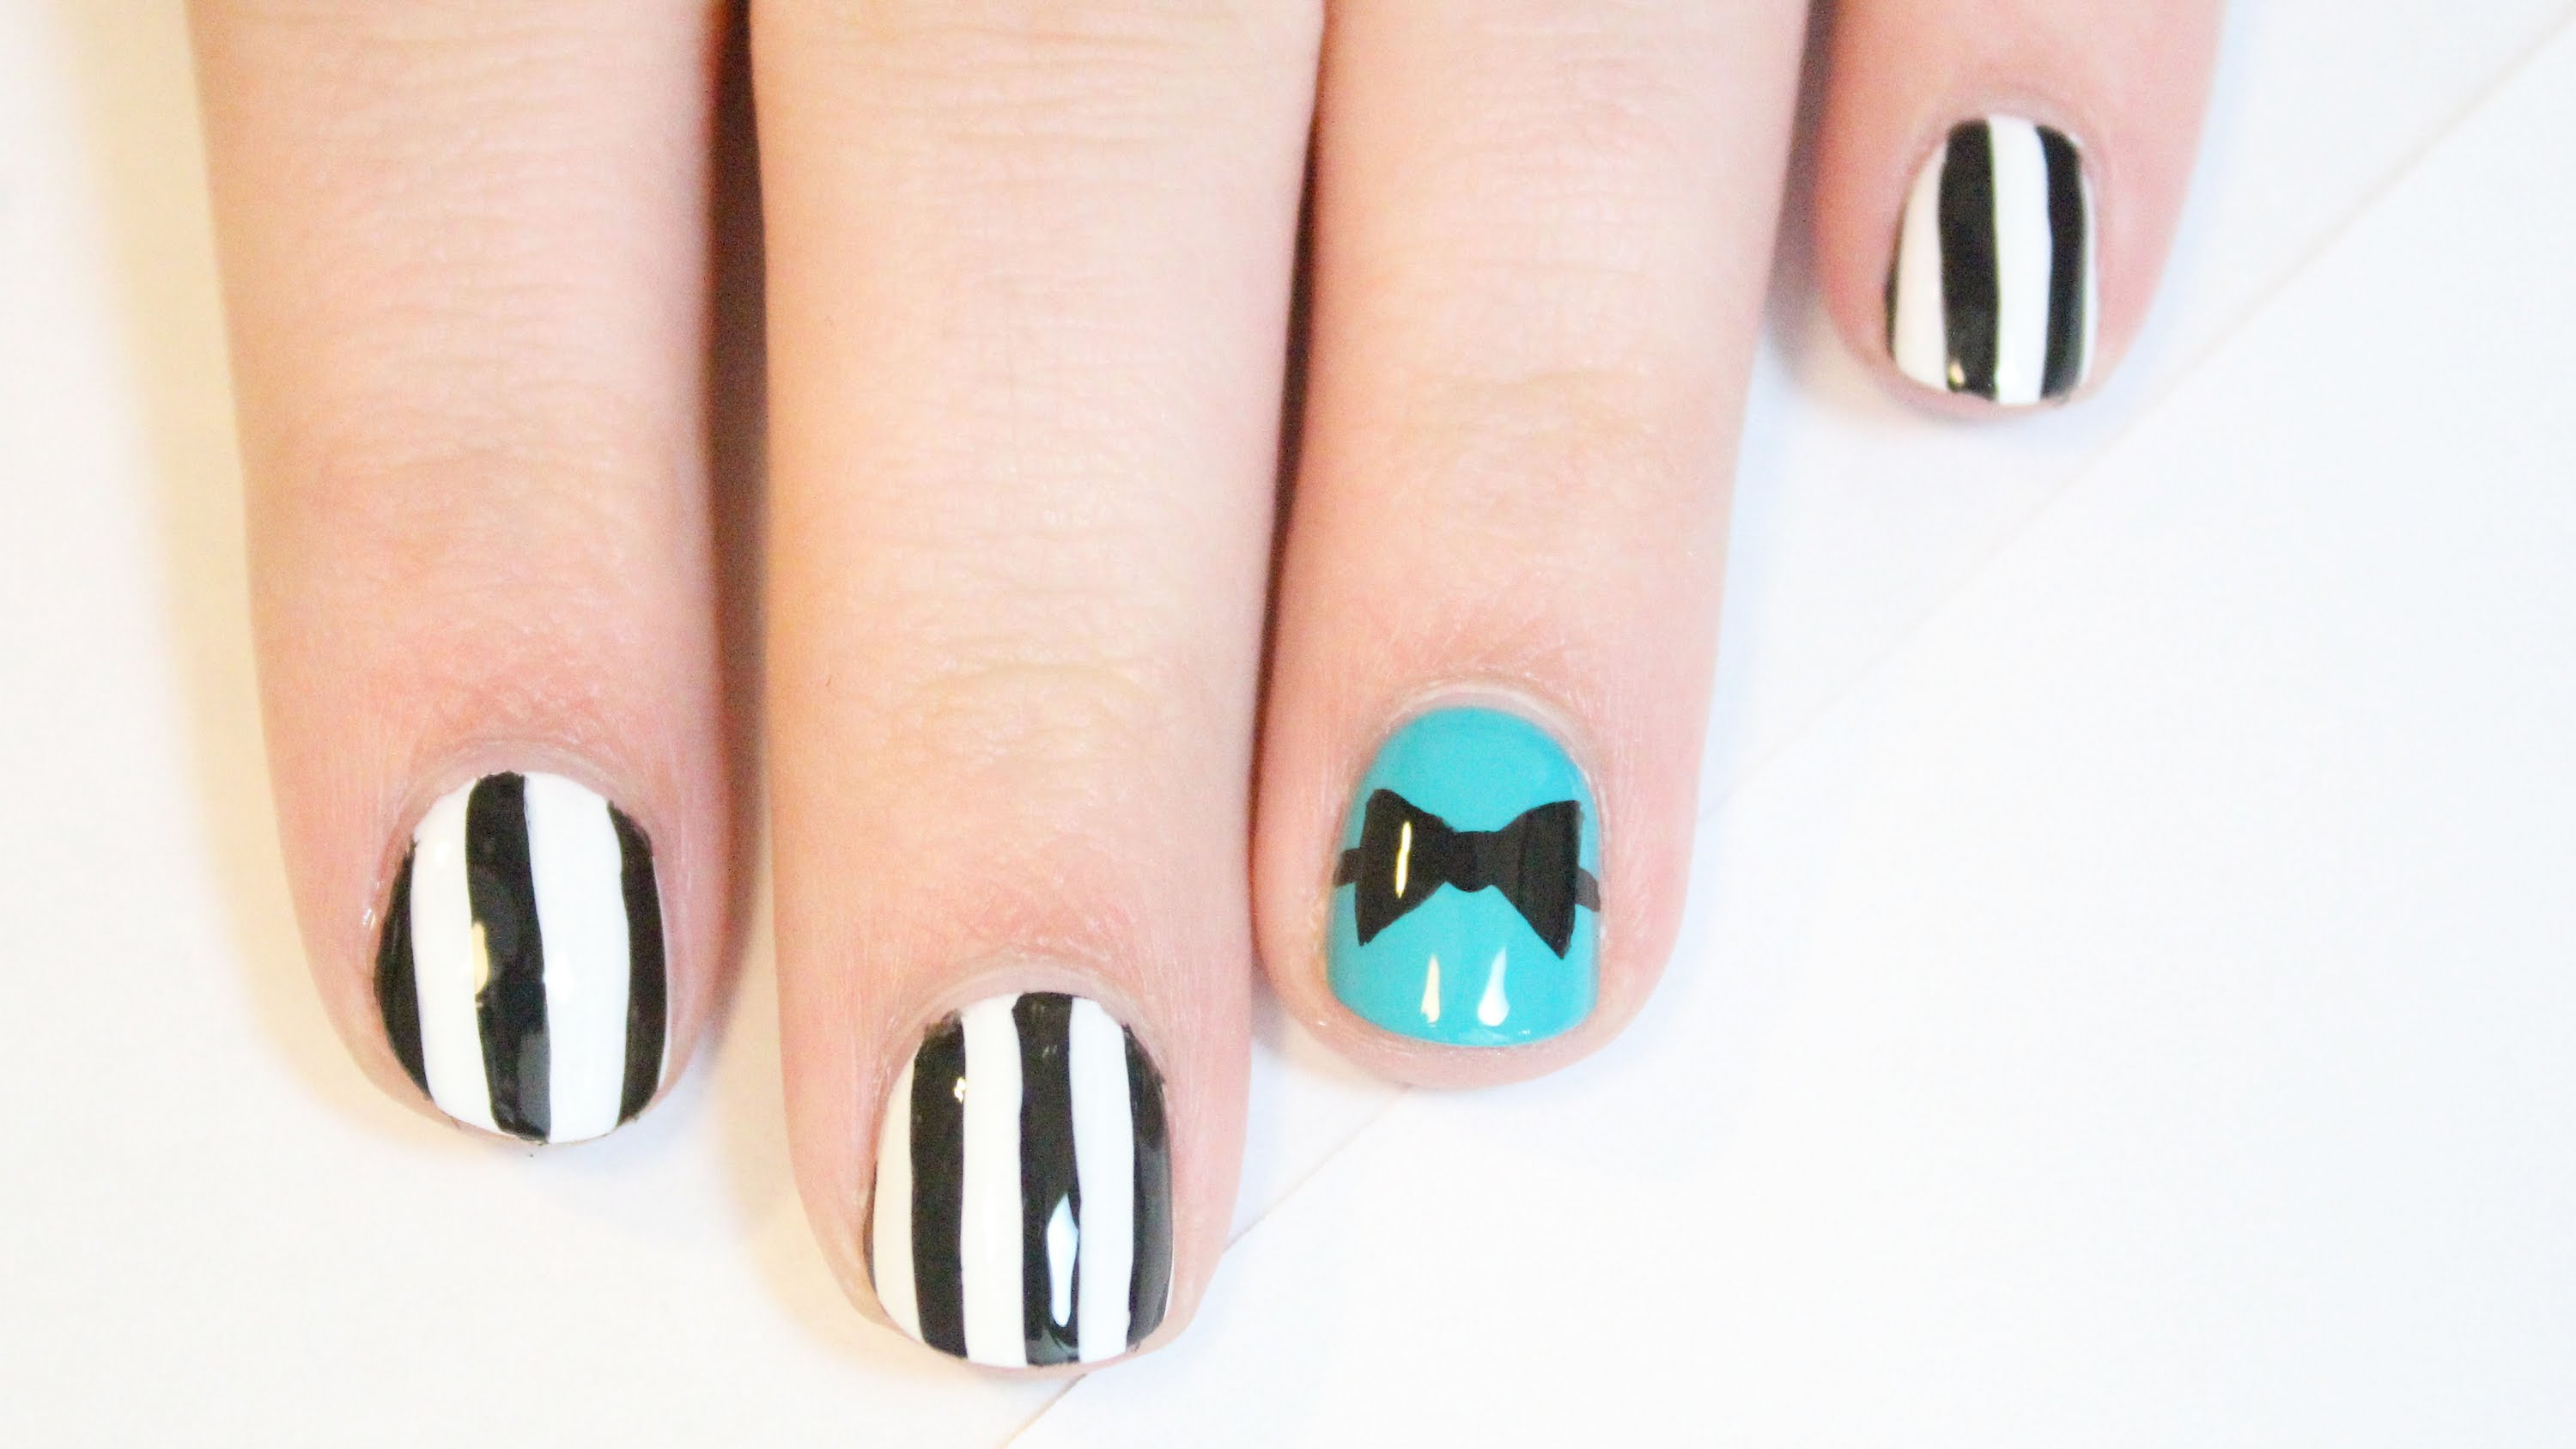 Bow Tie Nail Designs Gallery Easy Nail Designs For Beginners Step